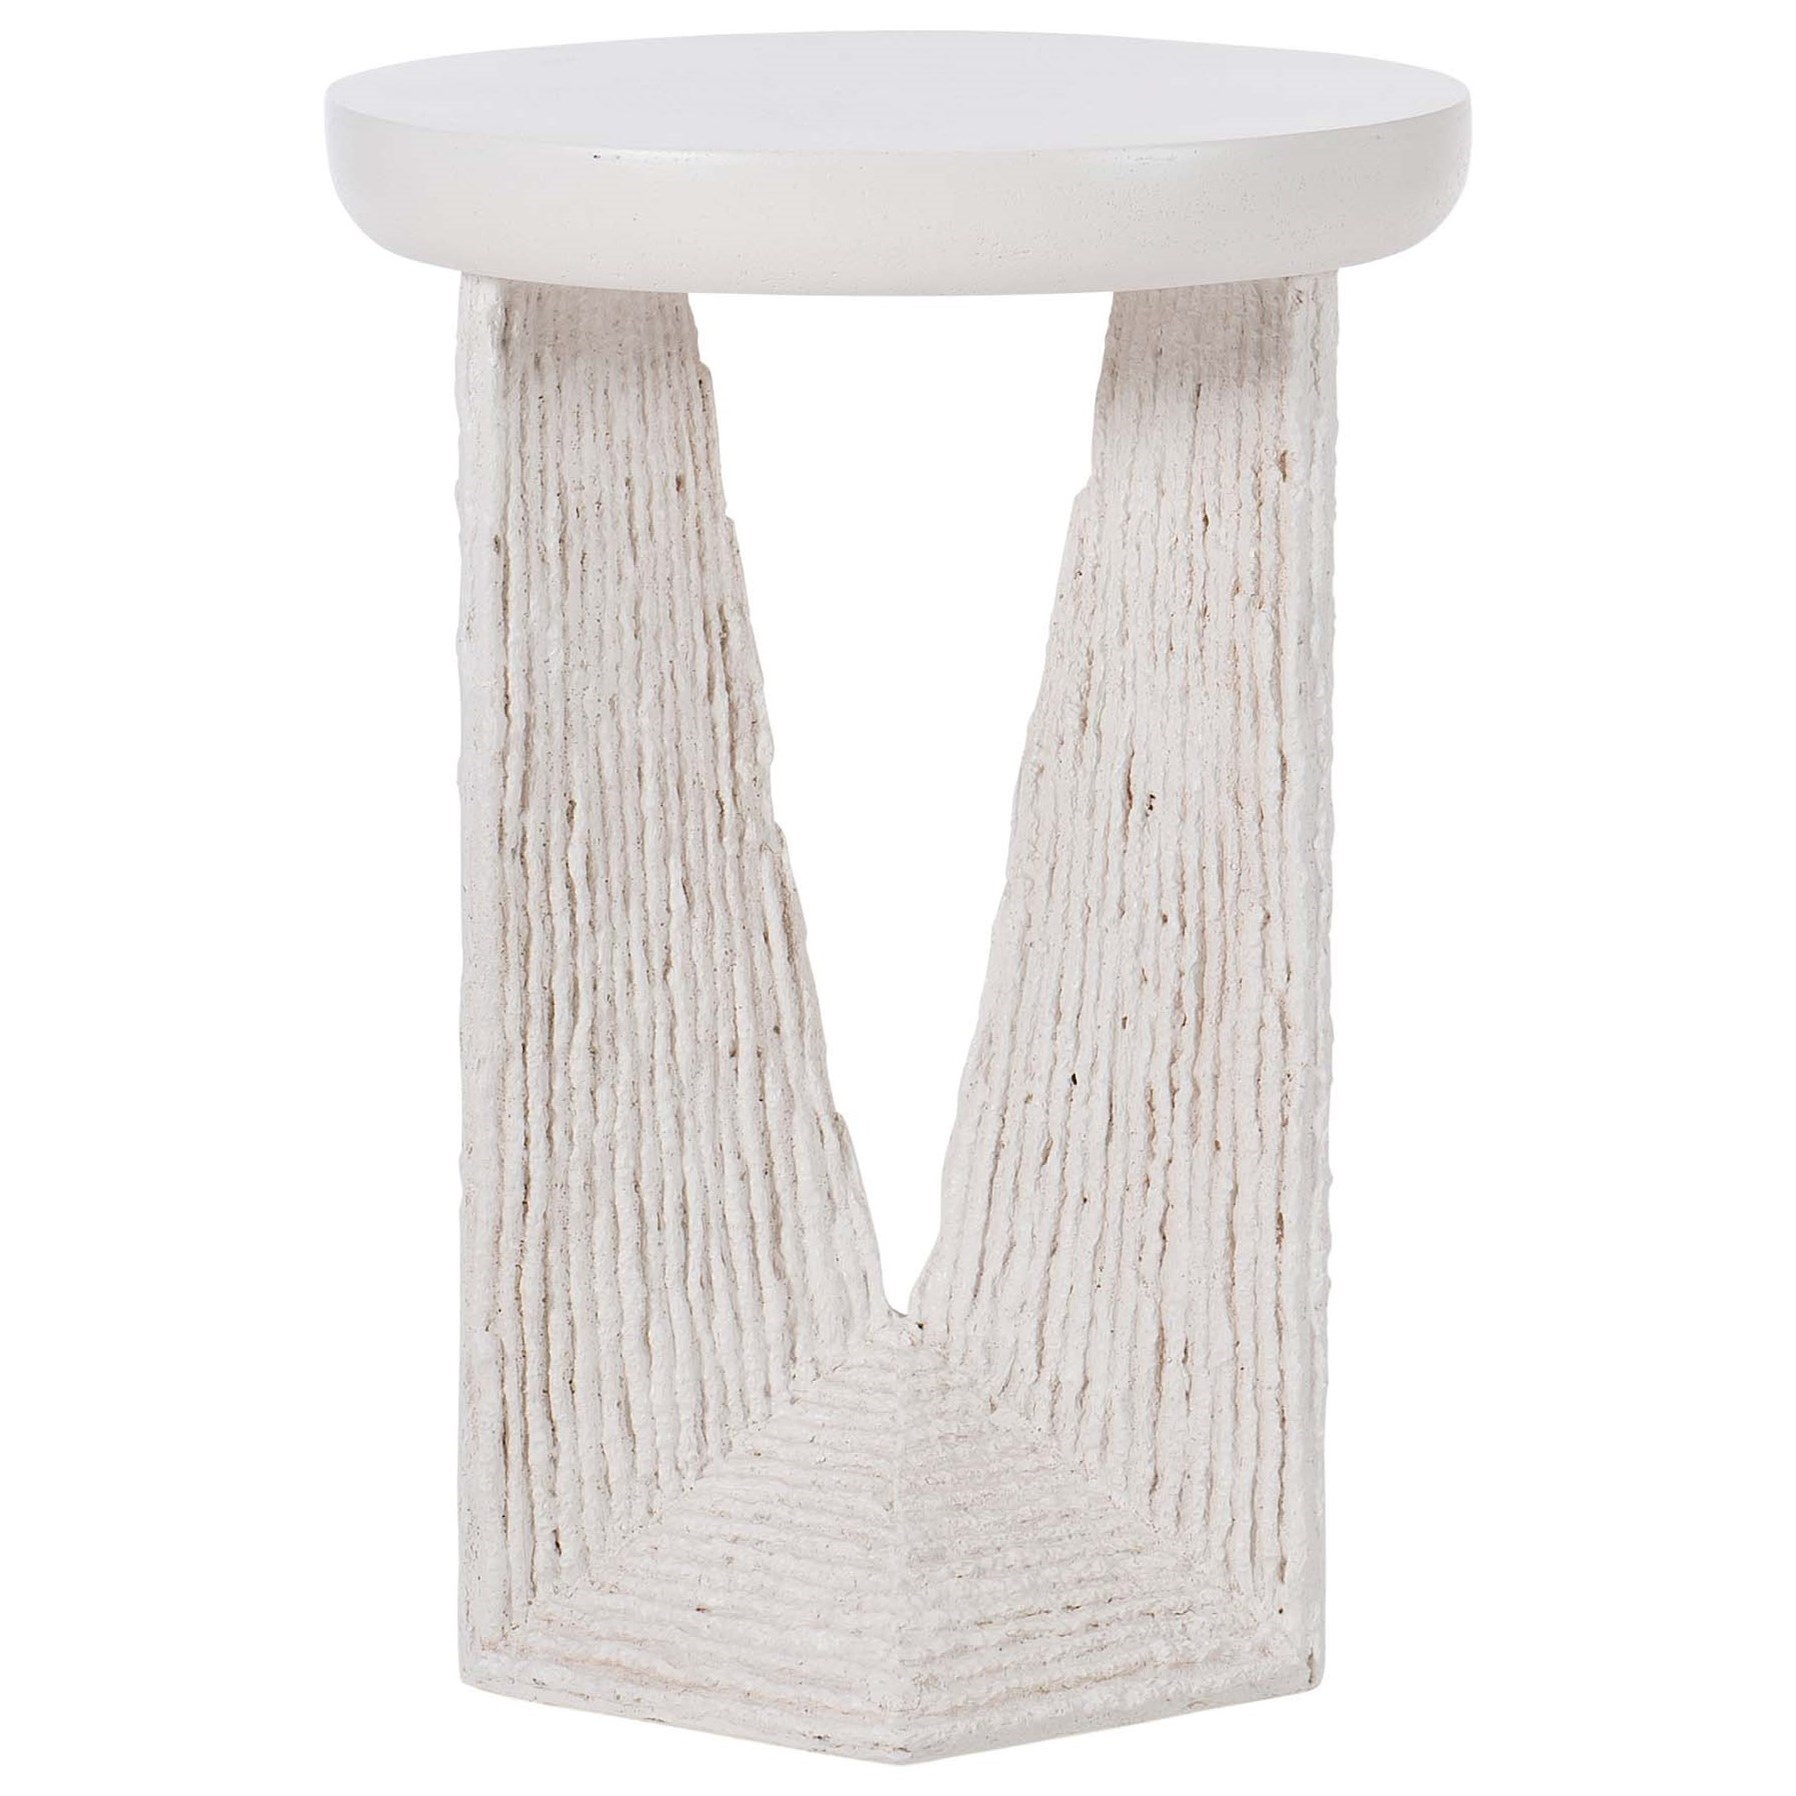 Exteriors - Voila Accent Table by Bernhardt at Baer's Furniture